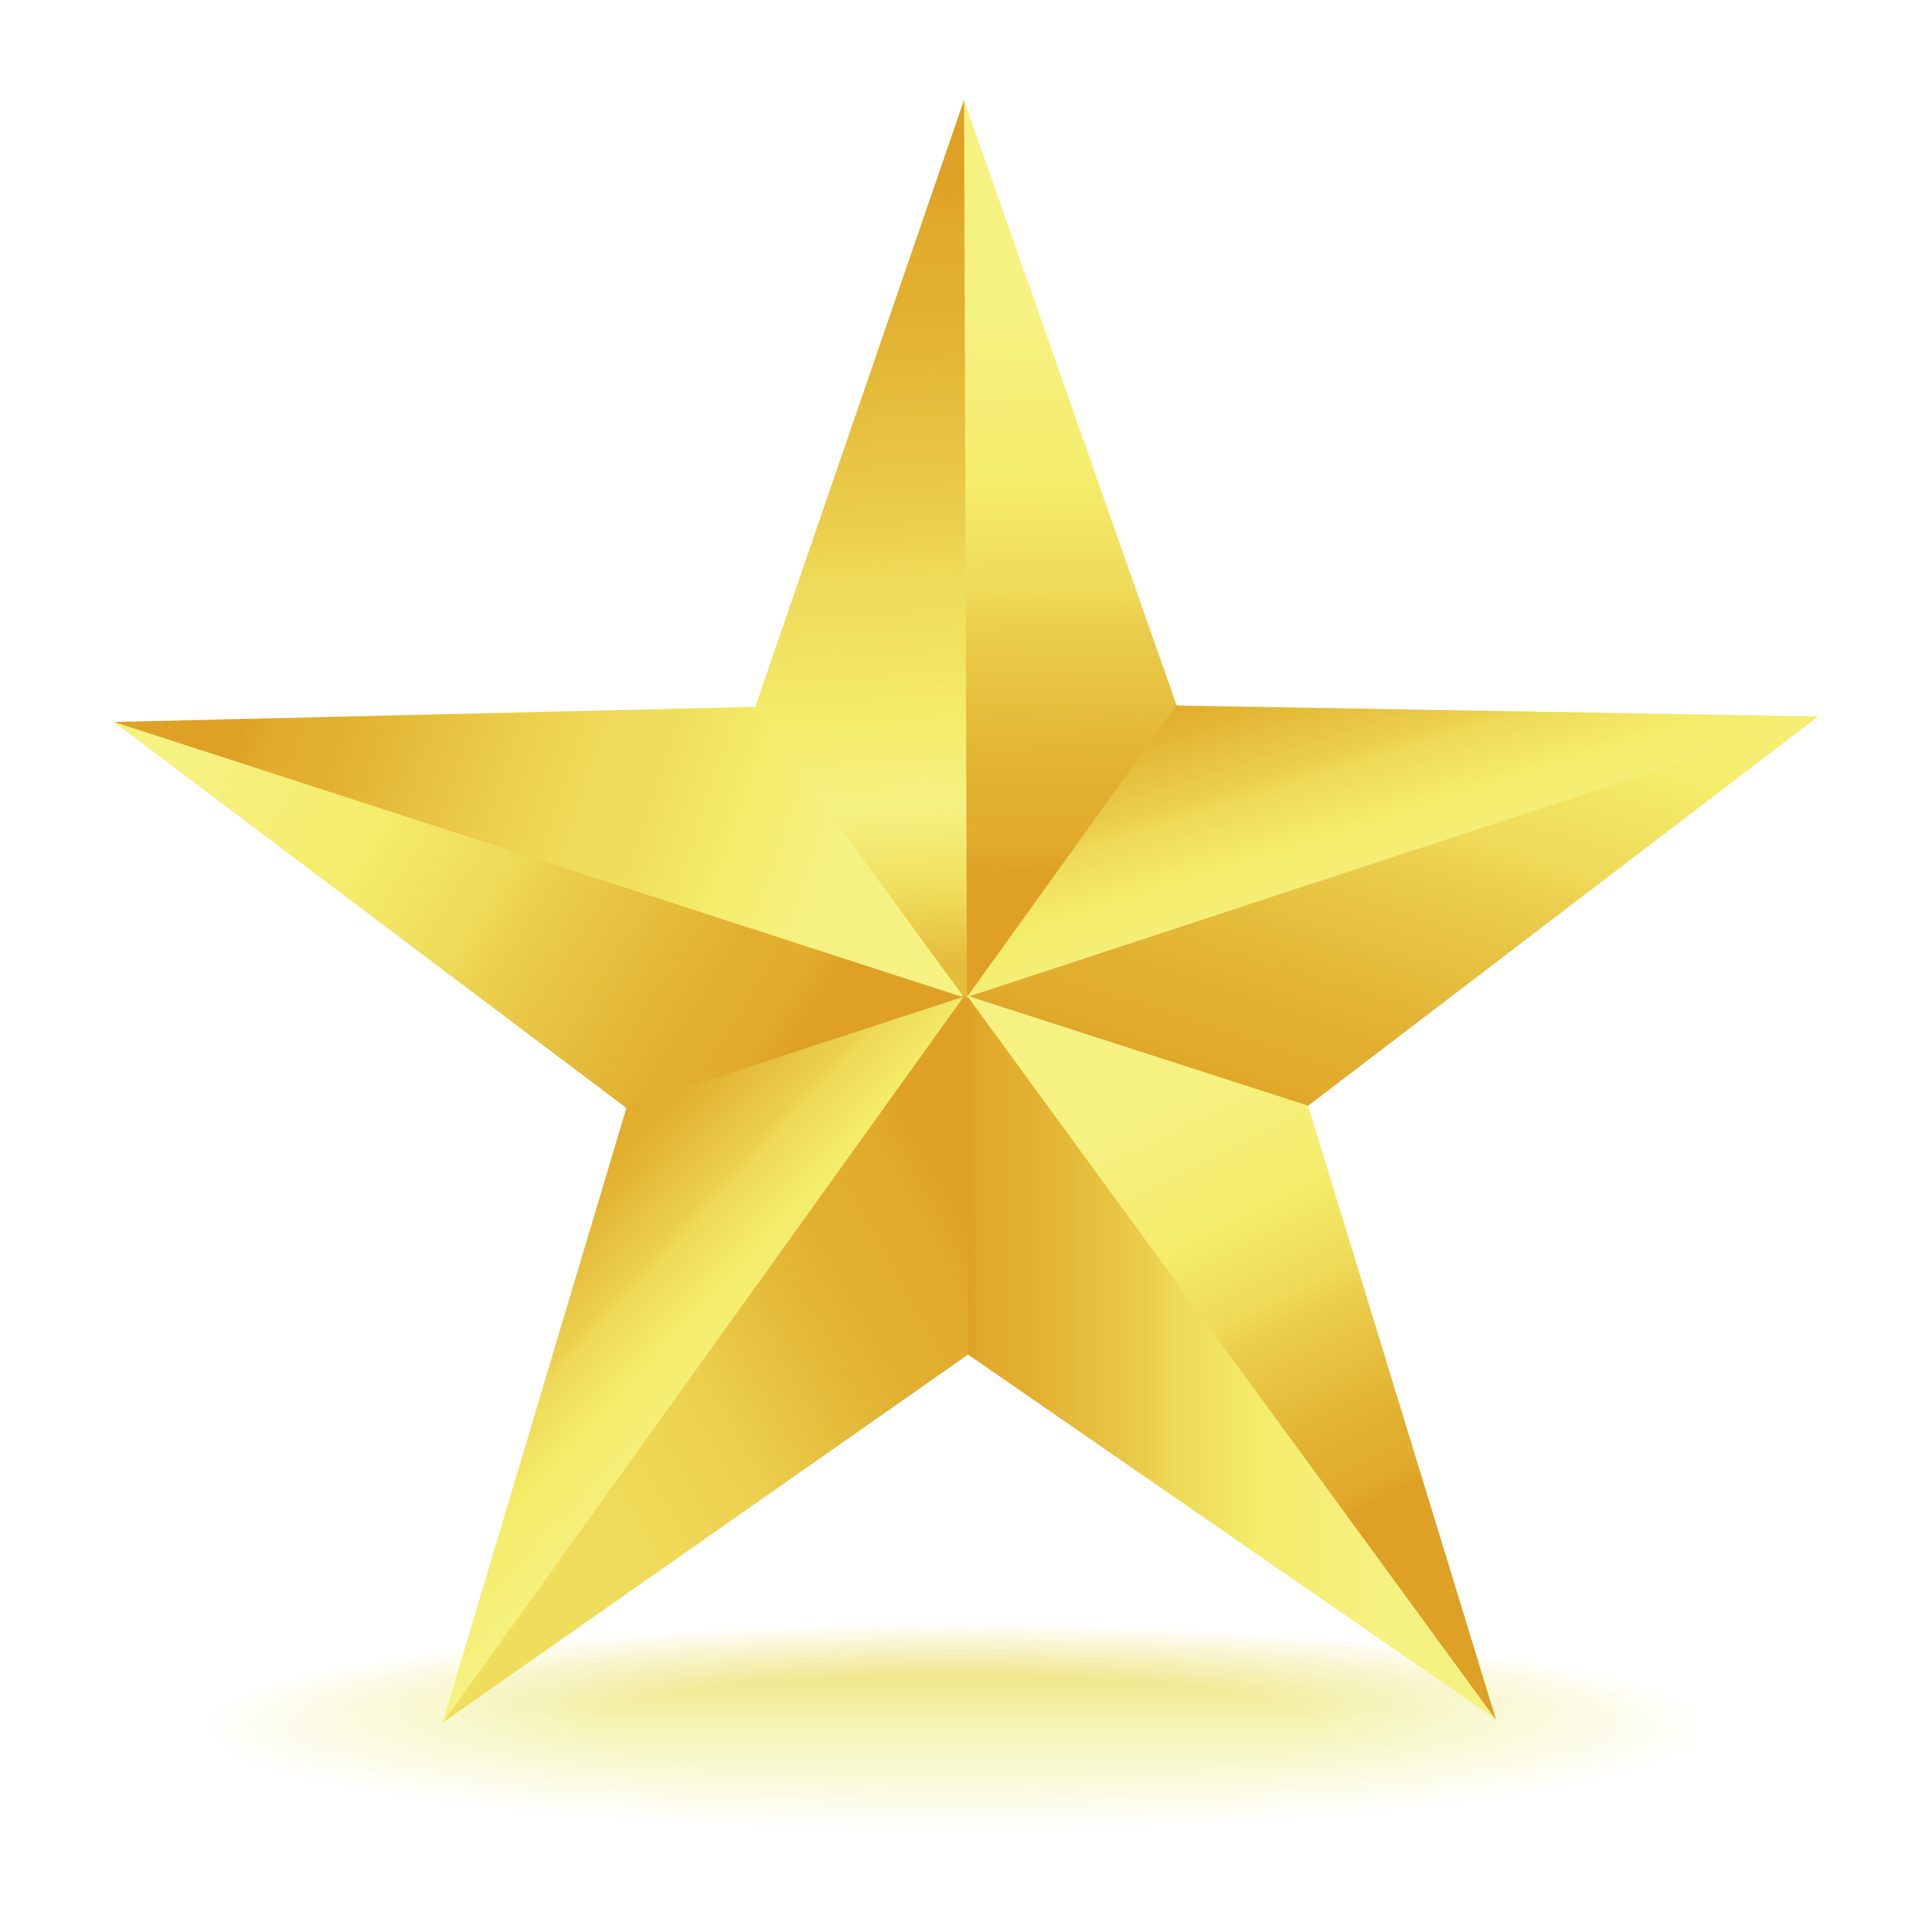 2800x2800 Golden Star Clipart Cliparts For You